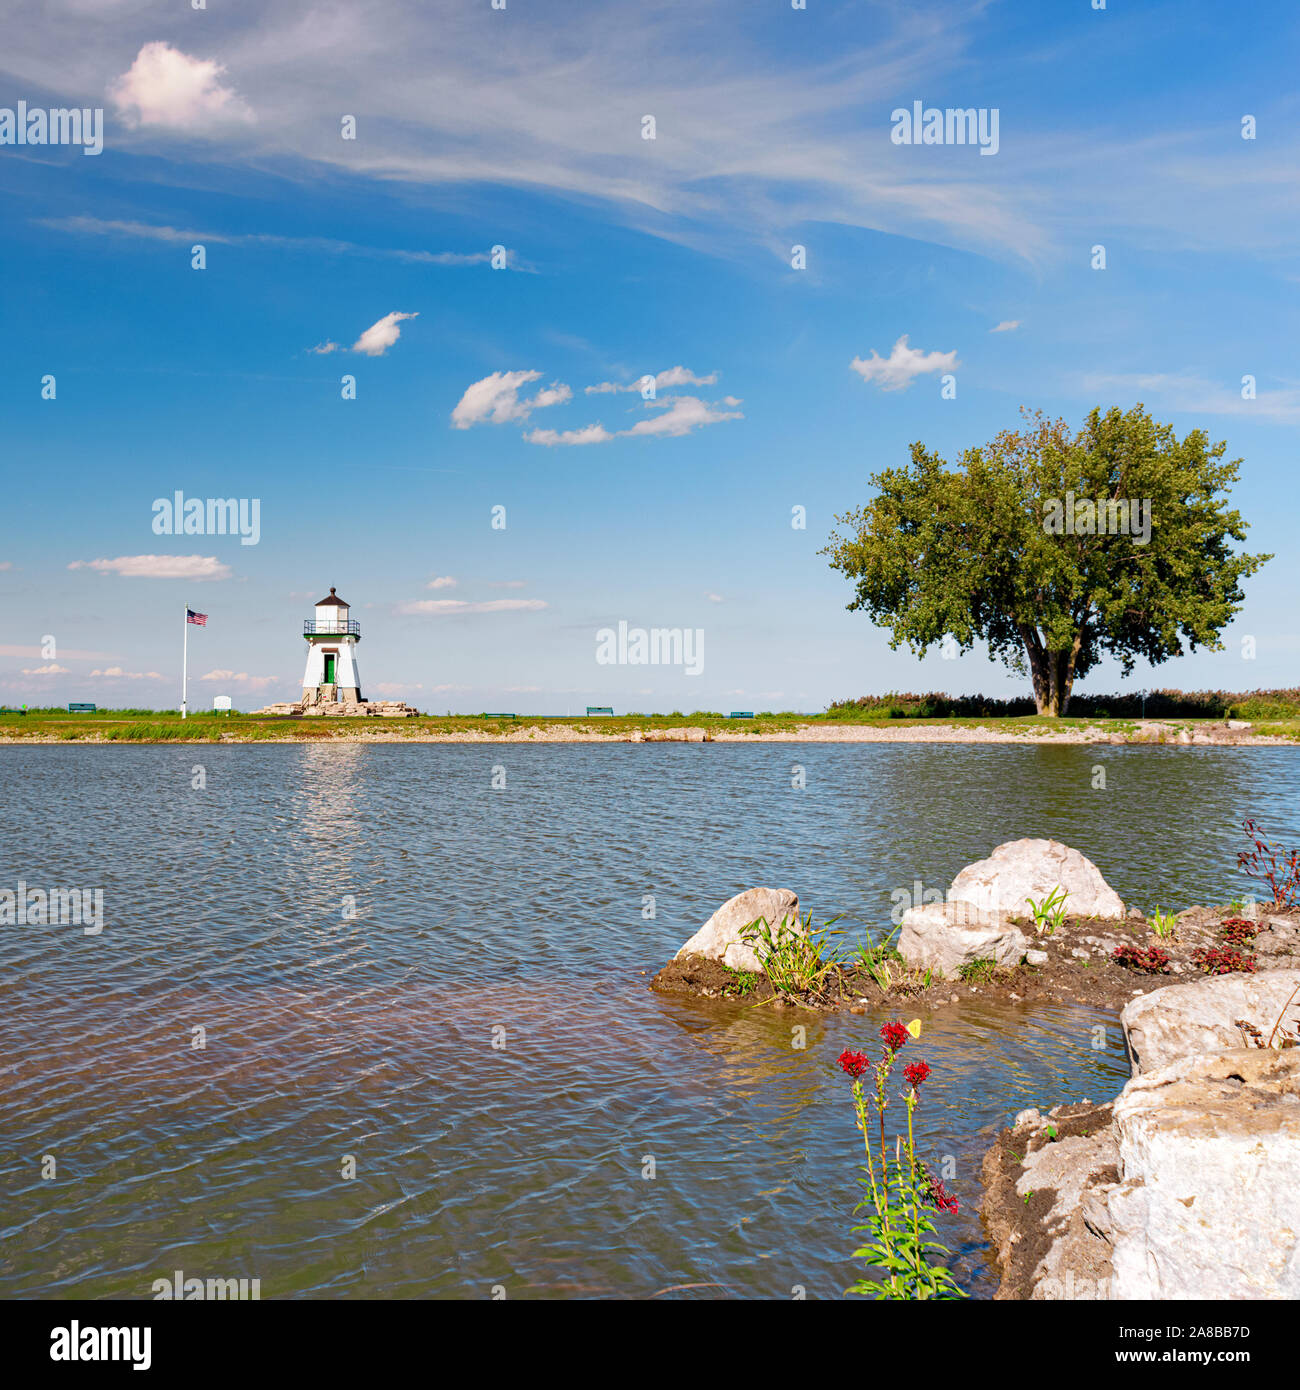 port-clinton-light-station-port-clinton-ohio-great-lakes-lighthouse-lake-erie-is-behind-it-taken-across-a-small-pond-nearby-see-more-info-2A8BB7D.jpg